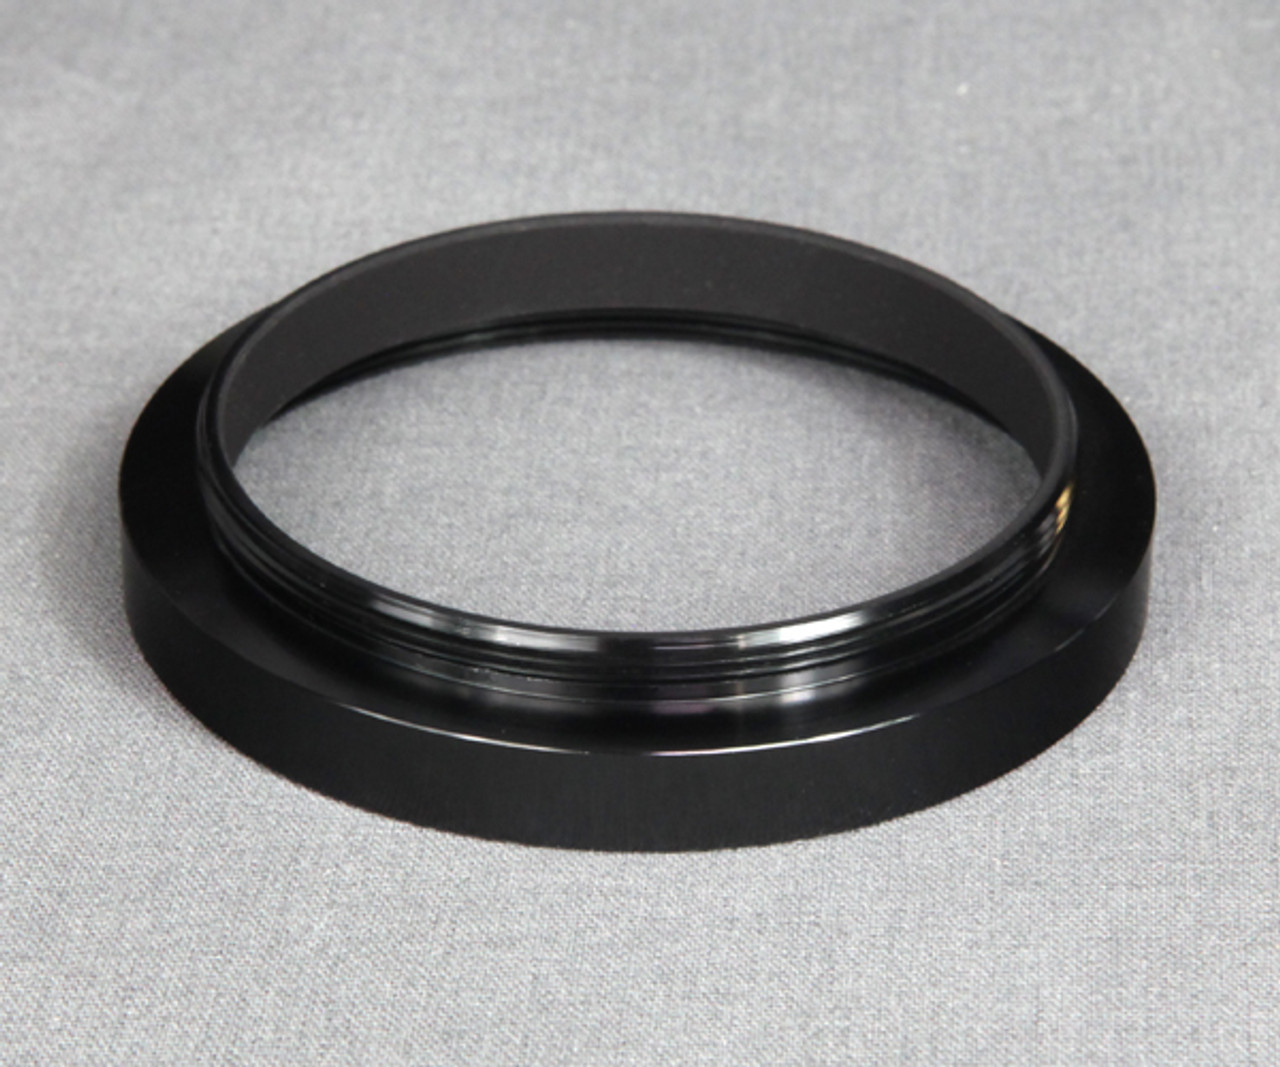 68 mm Female to 63 mm Male Adapter - SFA-F68M63-008